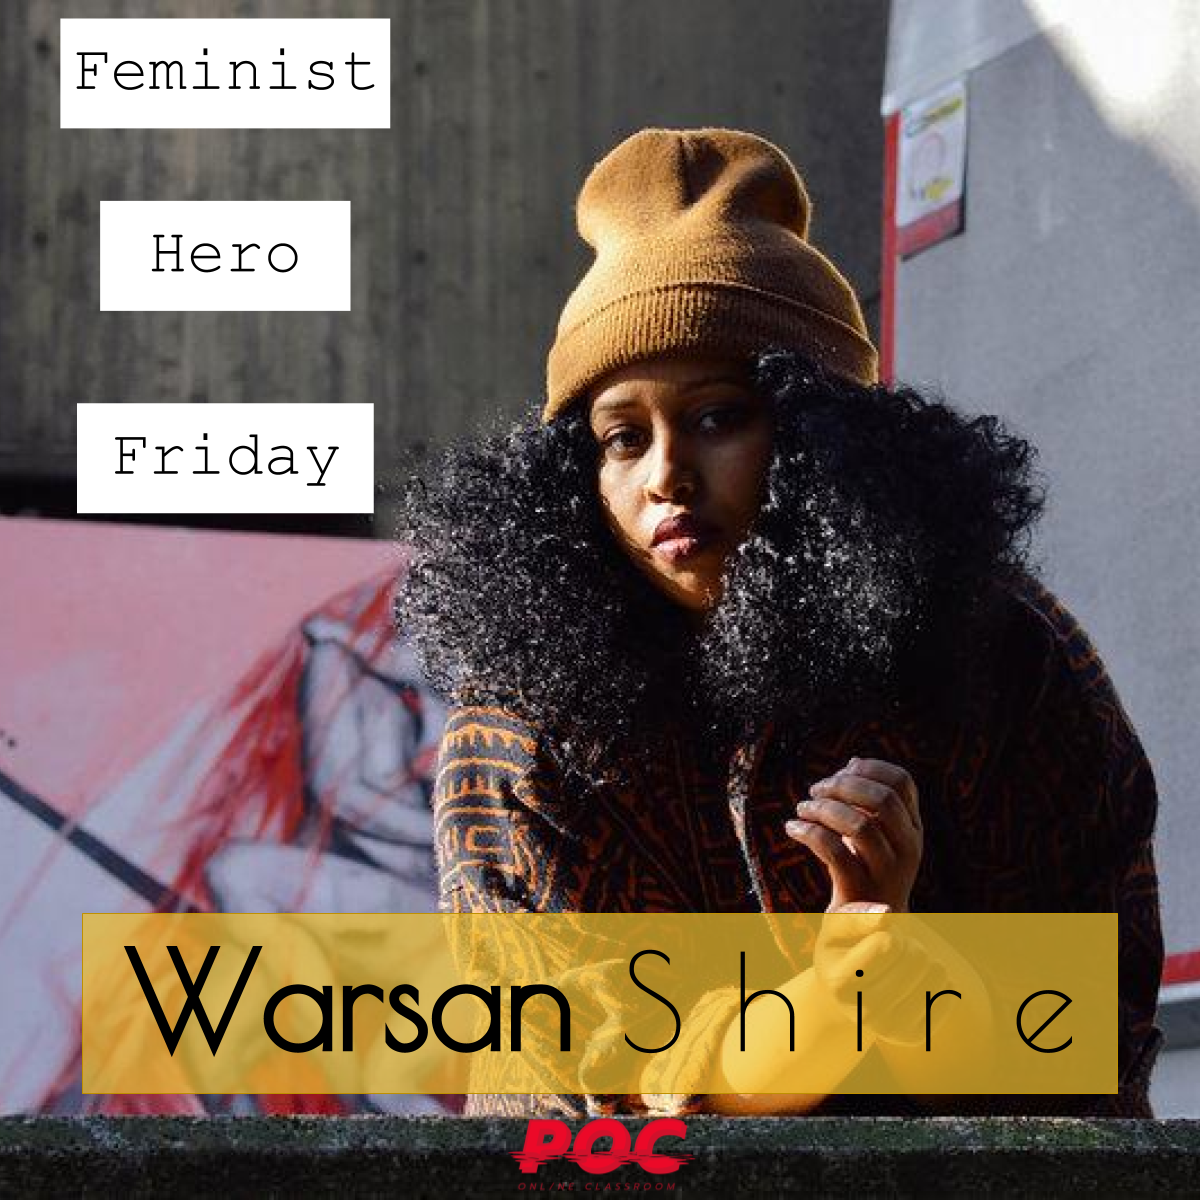 """Image of Warsan Shire wearing a beanie hat and looking at the camera. To her left are three text boxes reading """"Feminist Hero Friday."""" Beneath her is a mustard colored text box reading """"Warsan Shire."""" The red POC logo is at the bottom. Original image by  Amaal Said ."""